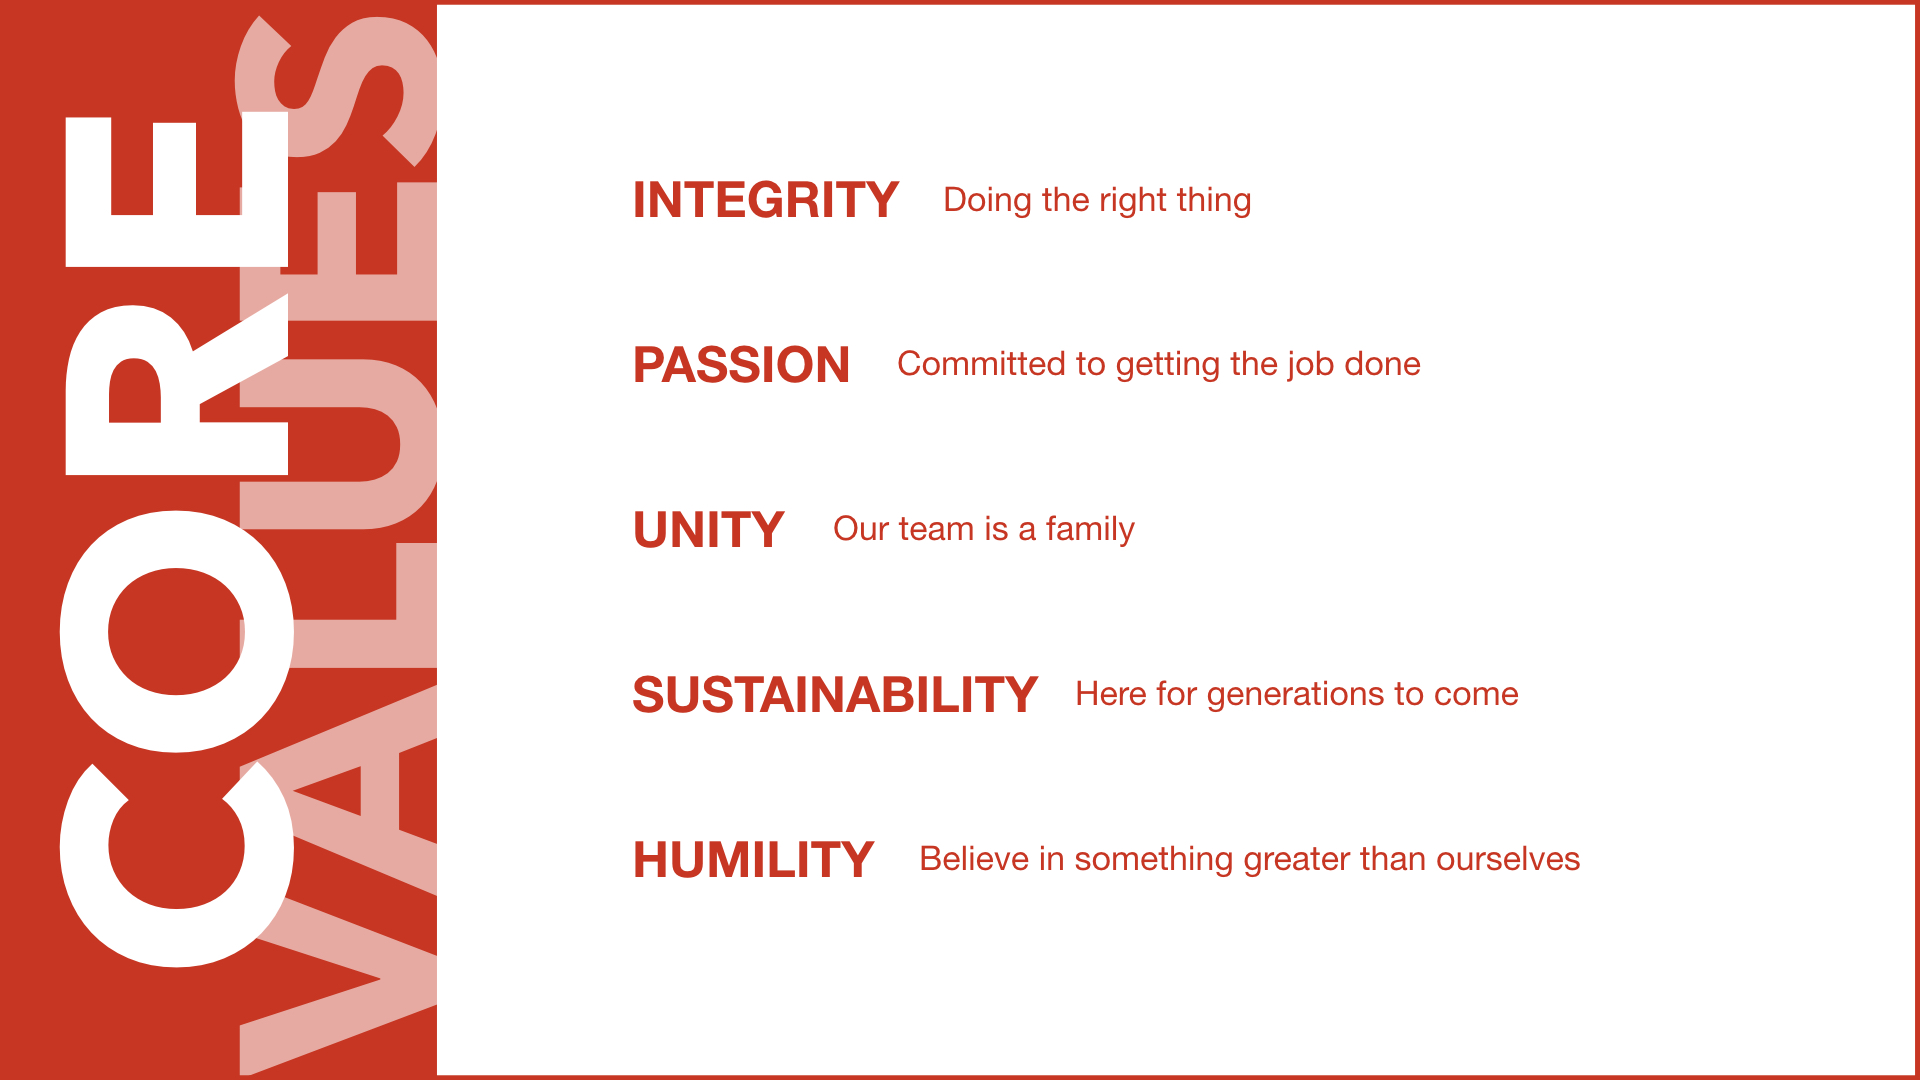 SPOT Core Values - Integrity, Passion, Unity, Sustainability, Humility